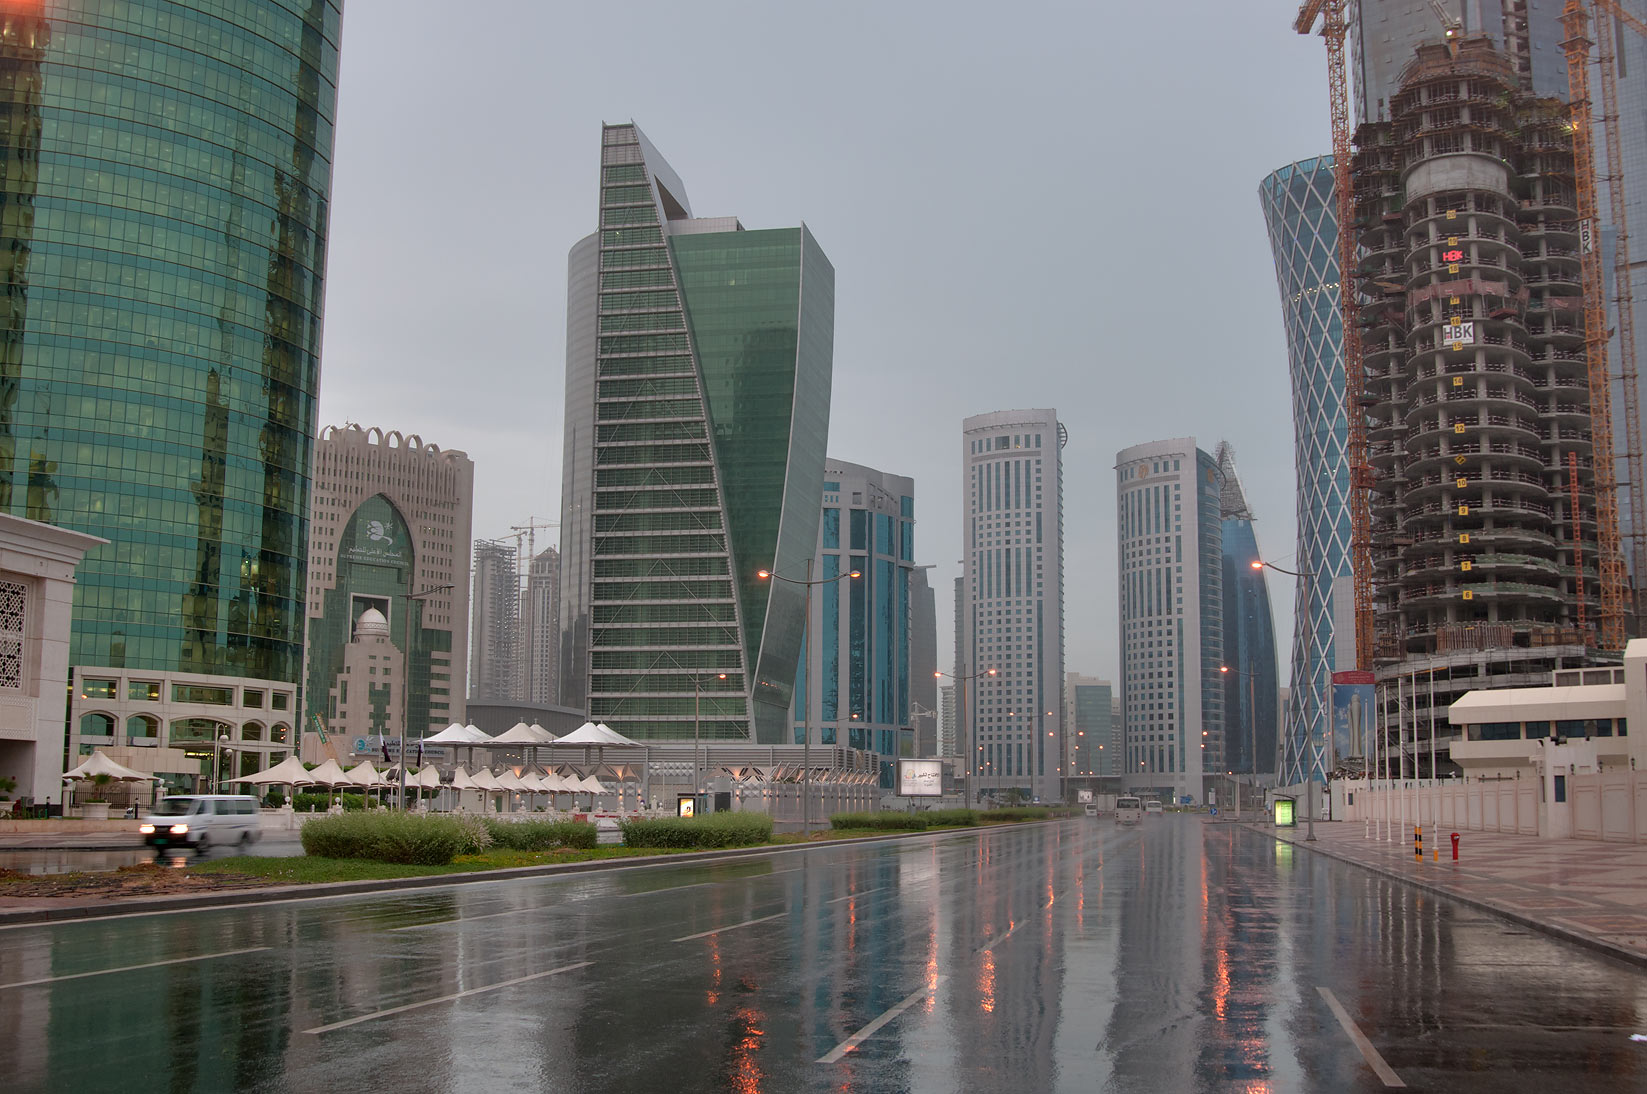 Majlis Al Taawon St. in West Bay at rain. Doha, Qatar